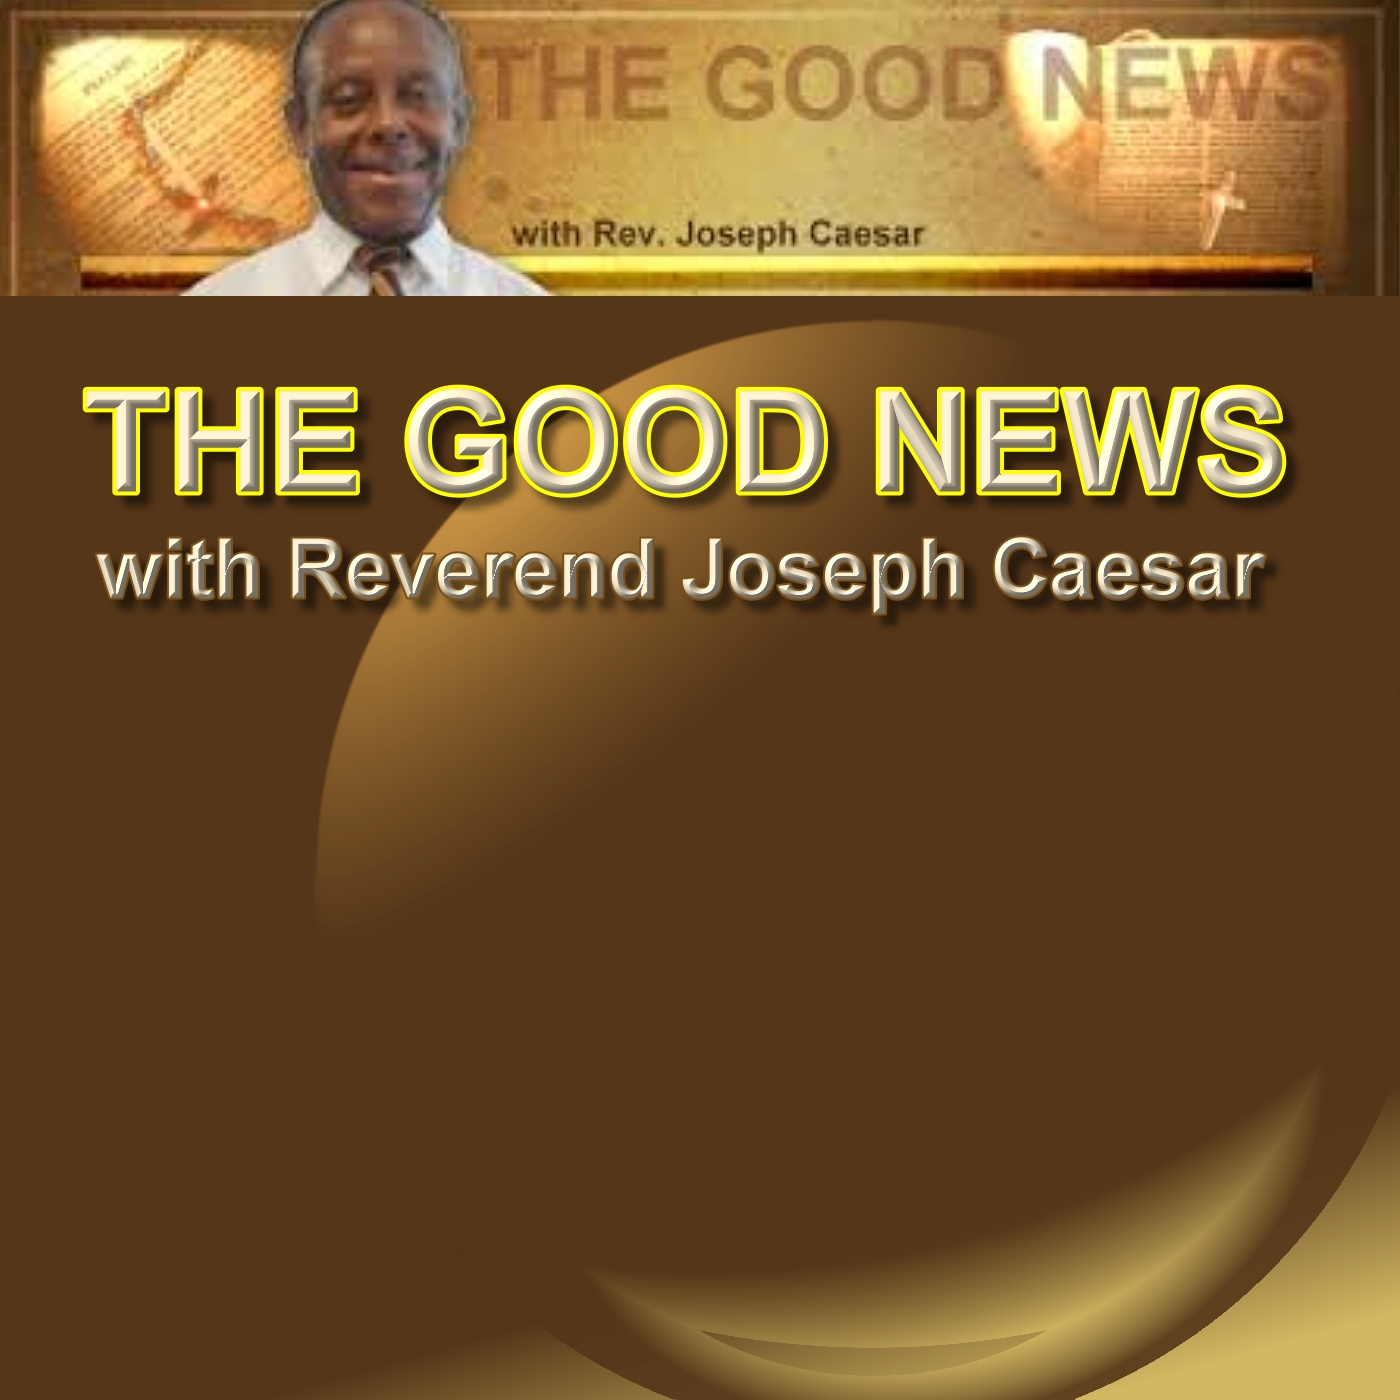 Good News with Rev Joseph Caesar